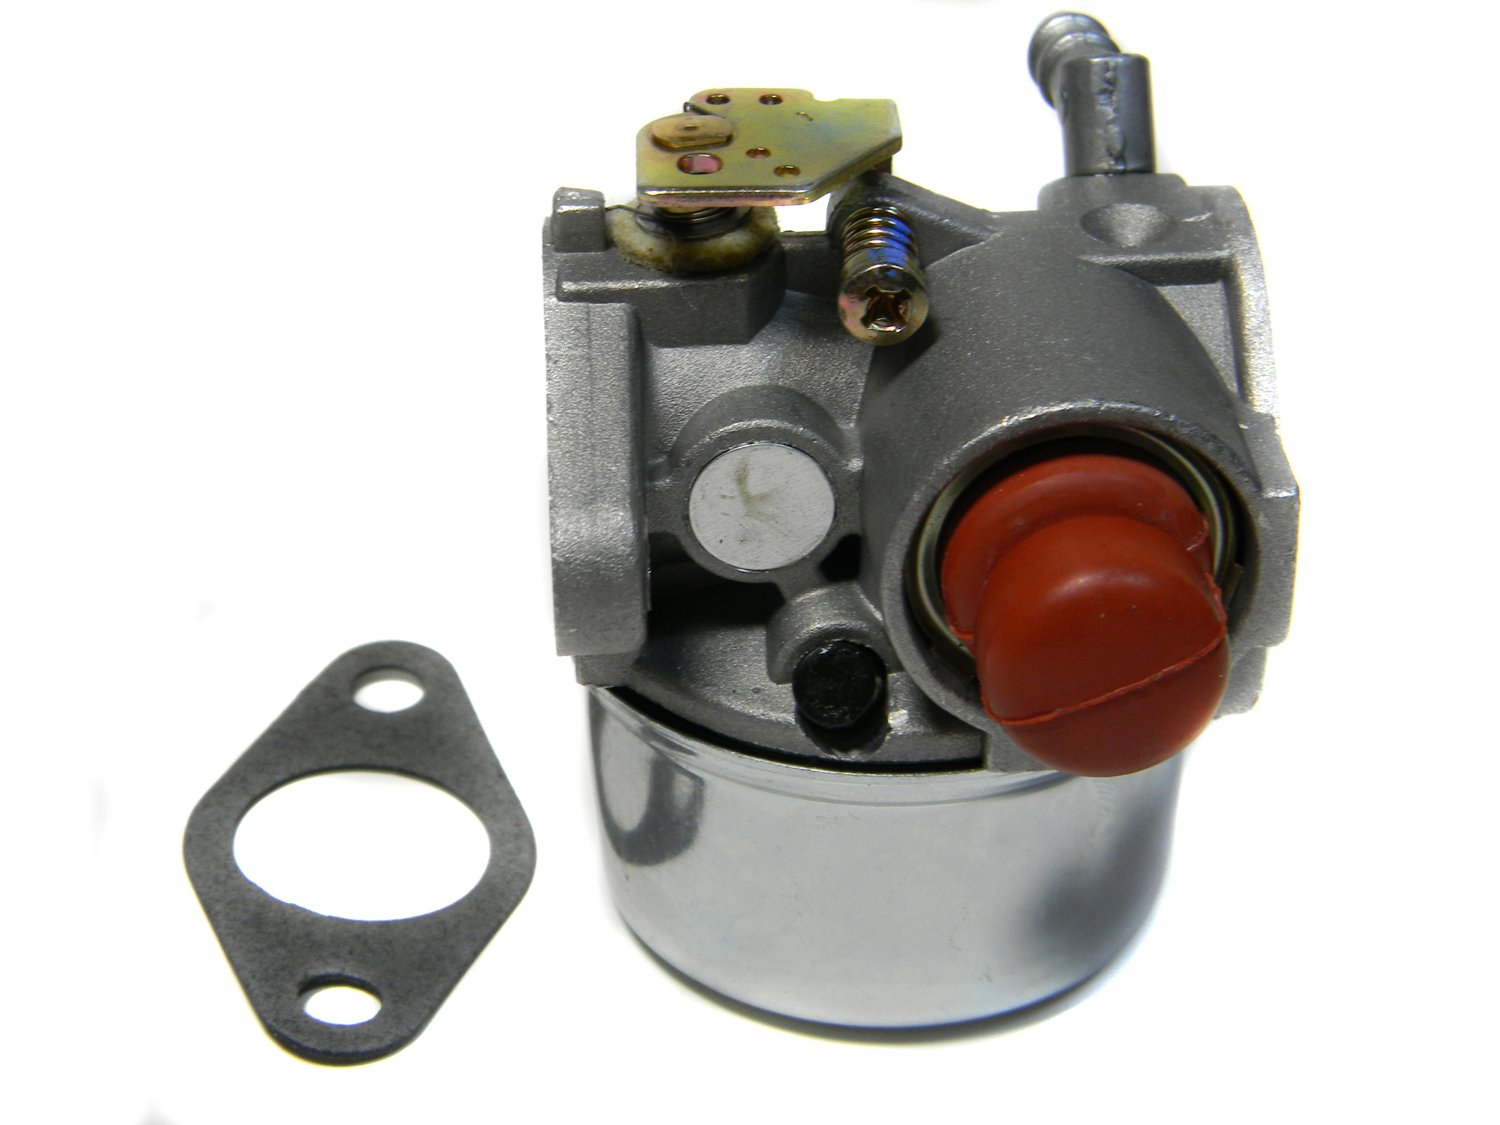 Tecumseh Carburetor Fits Models Ohh50 68079e 6 5 Hp Diagram 68079f 68079g Automotive